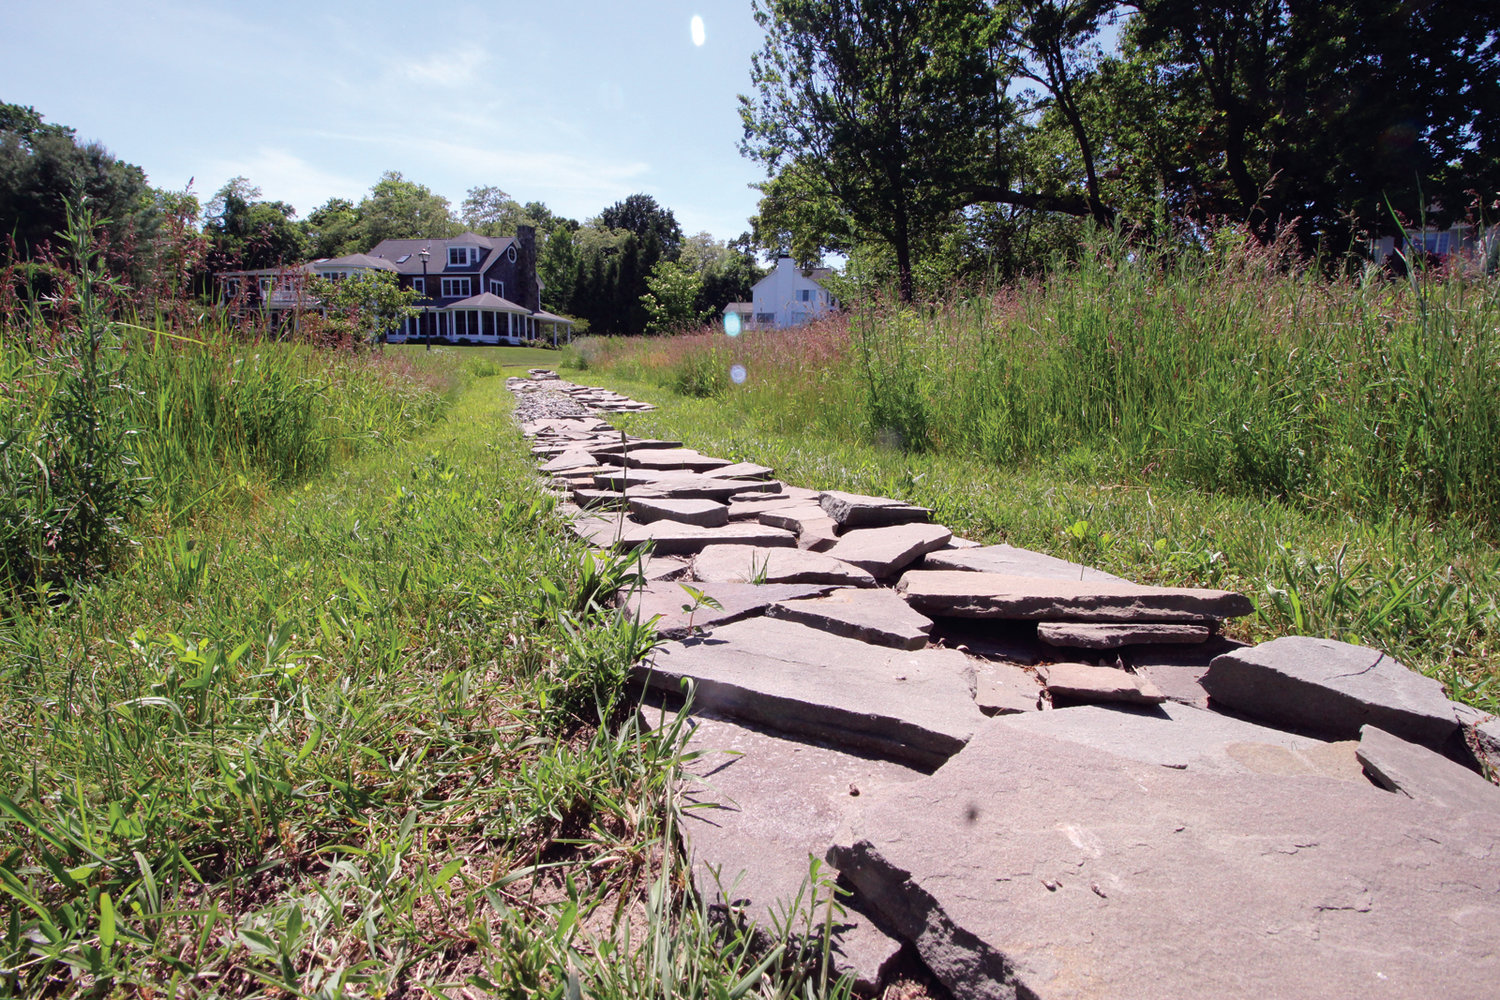 WALKWAY: An artistic feature of the Knights' meadow garden is a loose placed shale walkway.